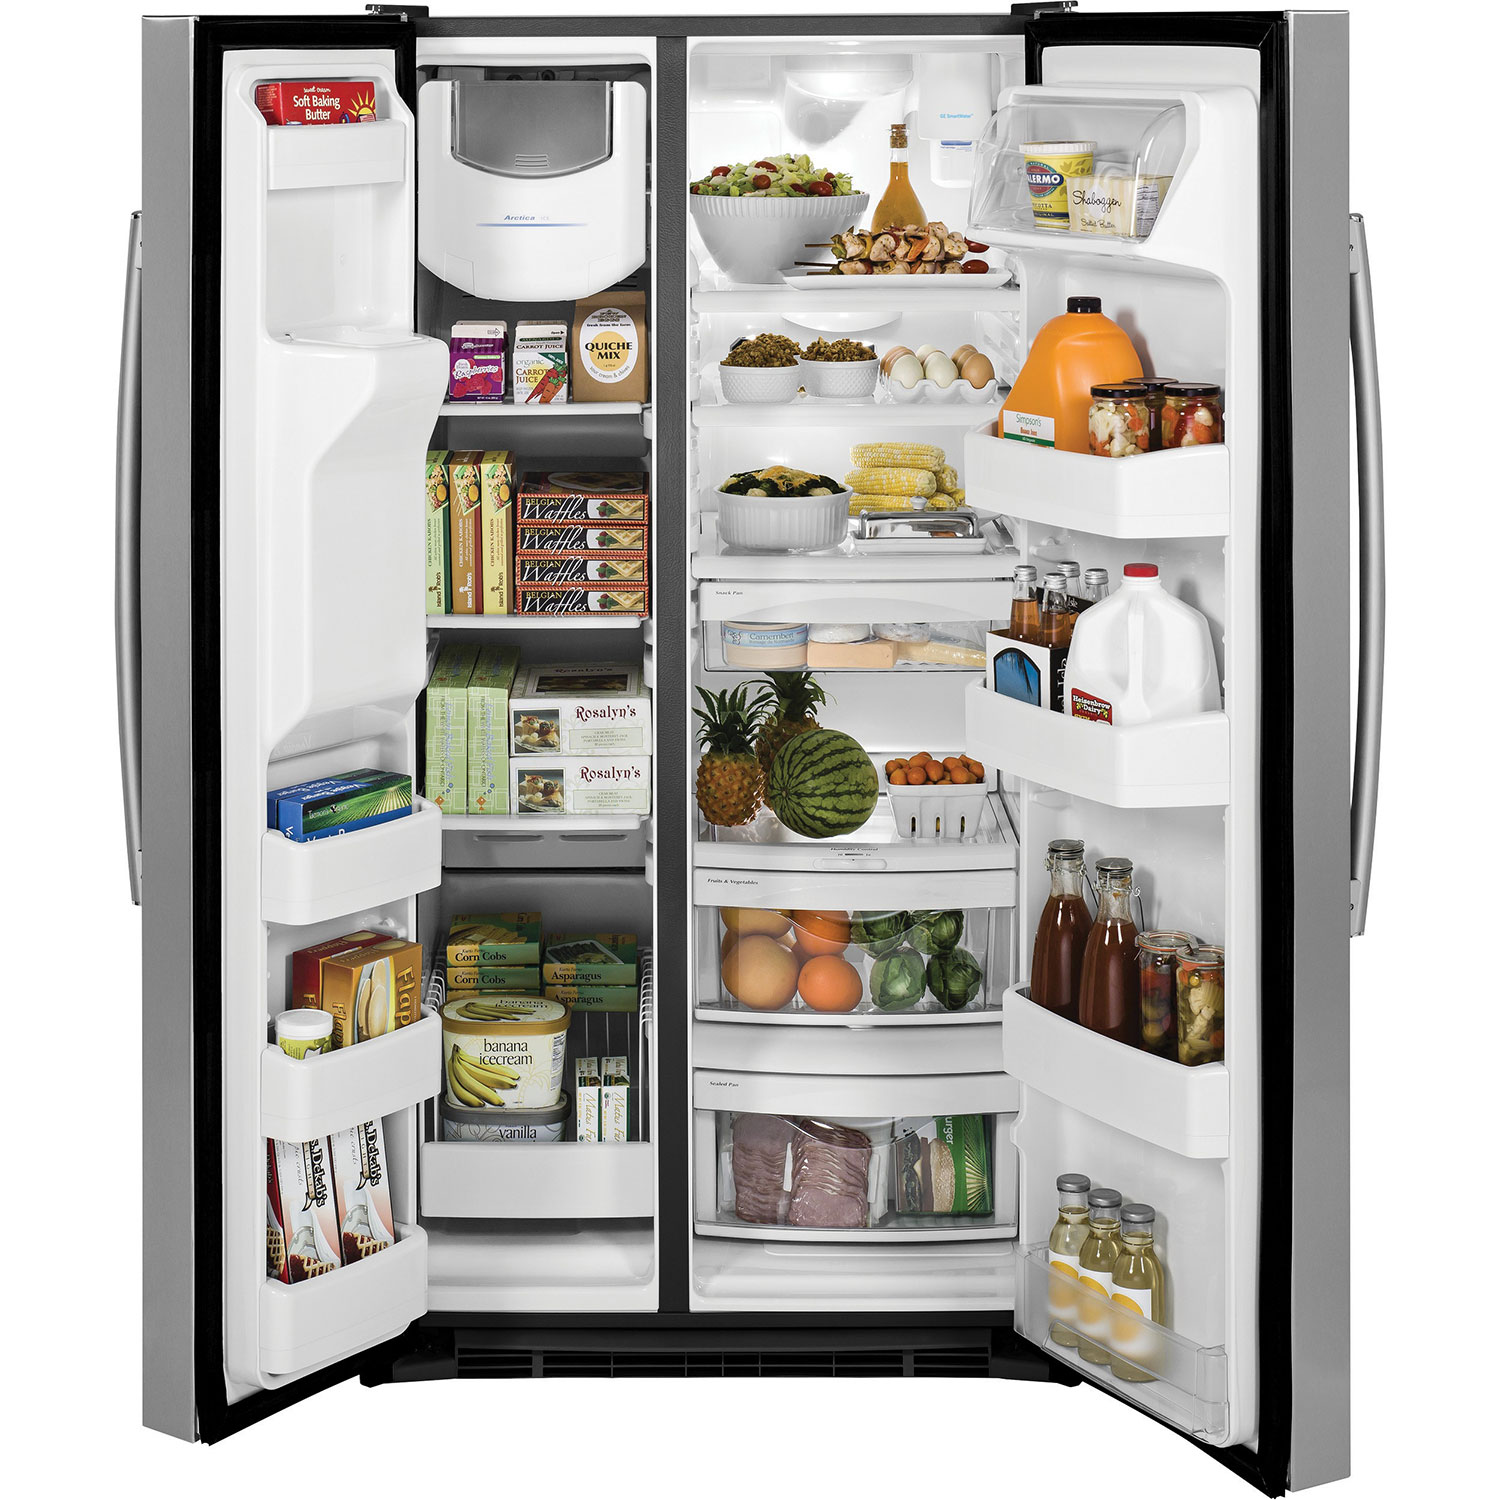 Ge 36 254 Cu Ft Side By Refrigerator With Ice Water Sxs Wiring Diagram Dispenser Stainless Steel Refrigerators Best Buy Canada